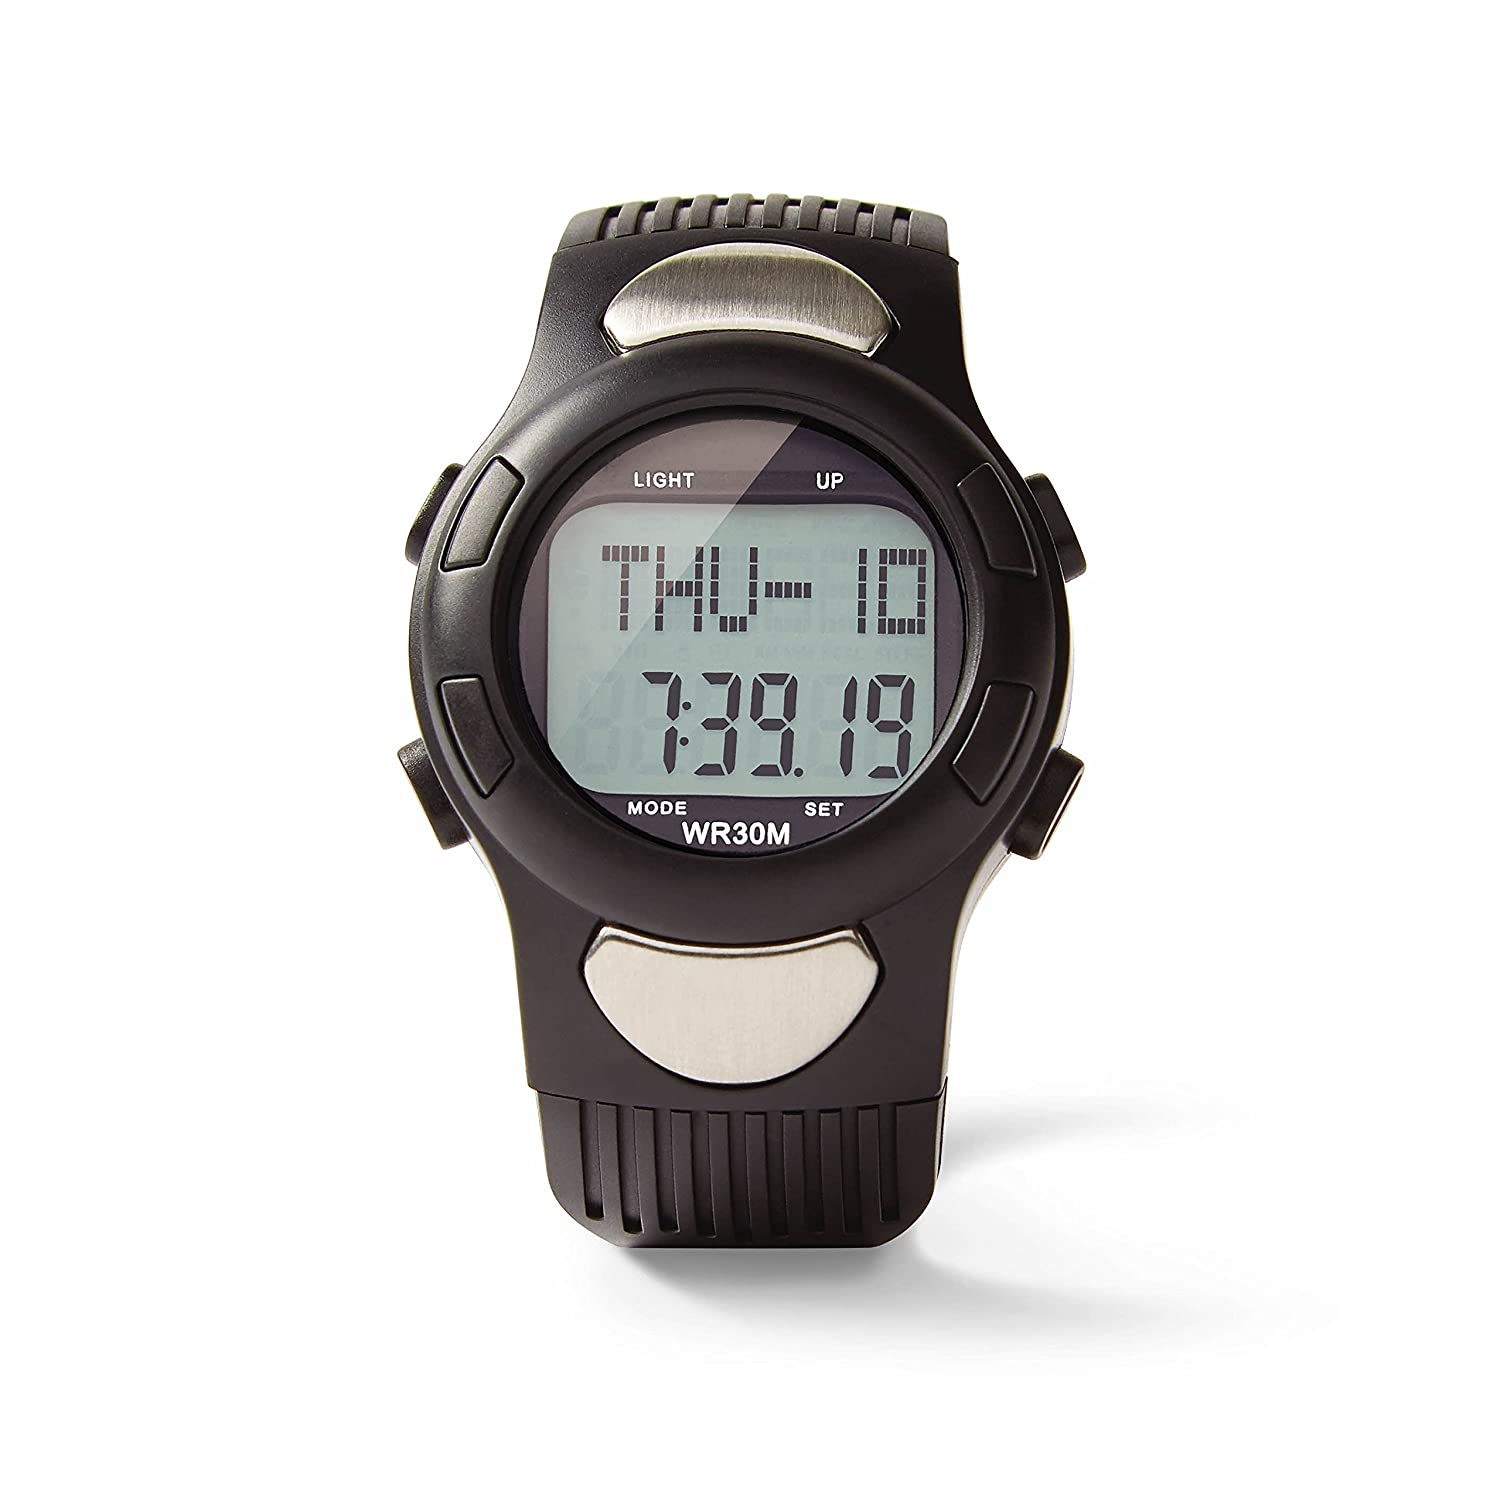 amazon com medline heart rate watch with pulse detection and rh amazon com Bowflex Heart Rate Watch Sportline Watch